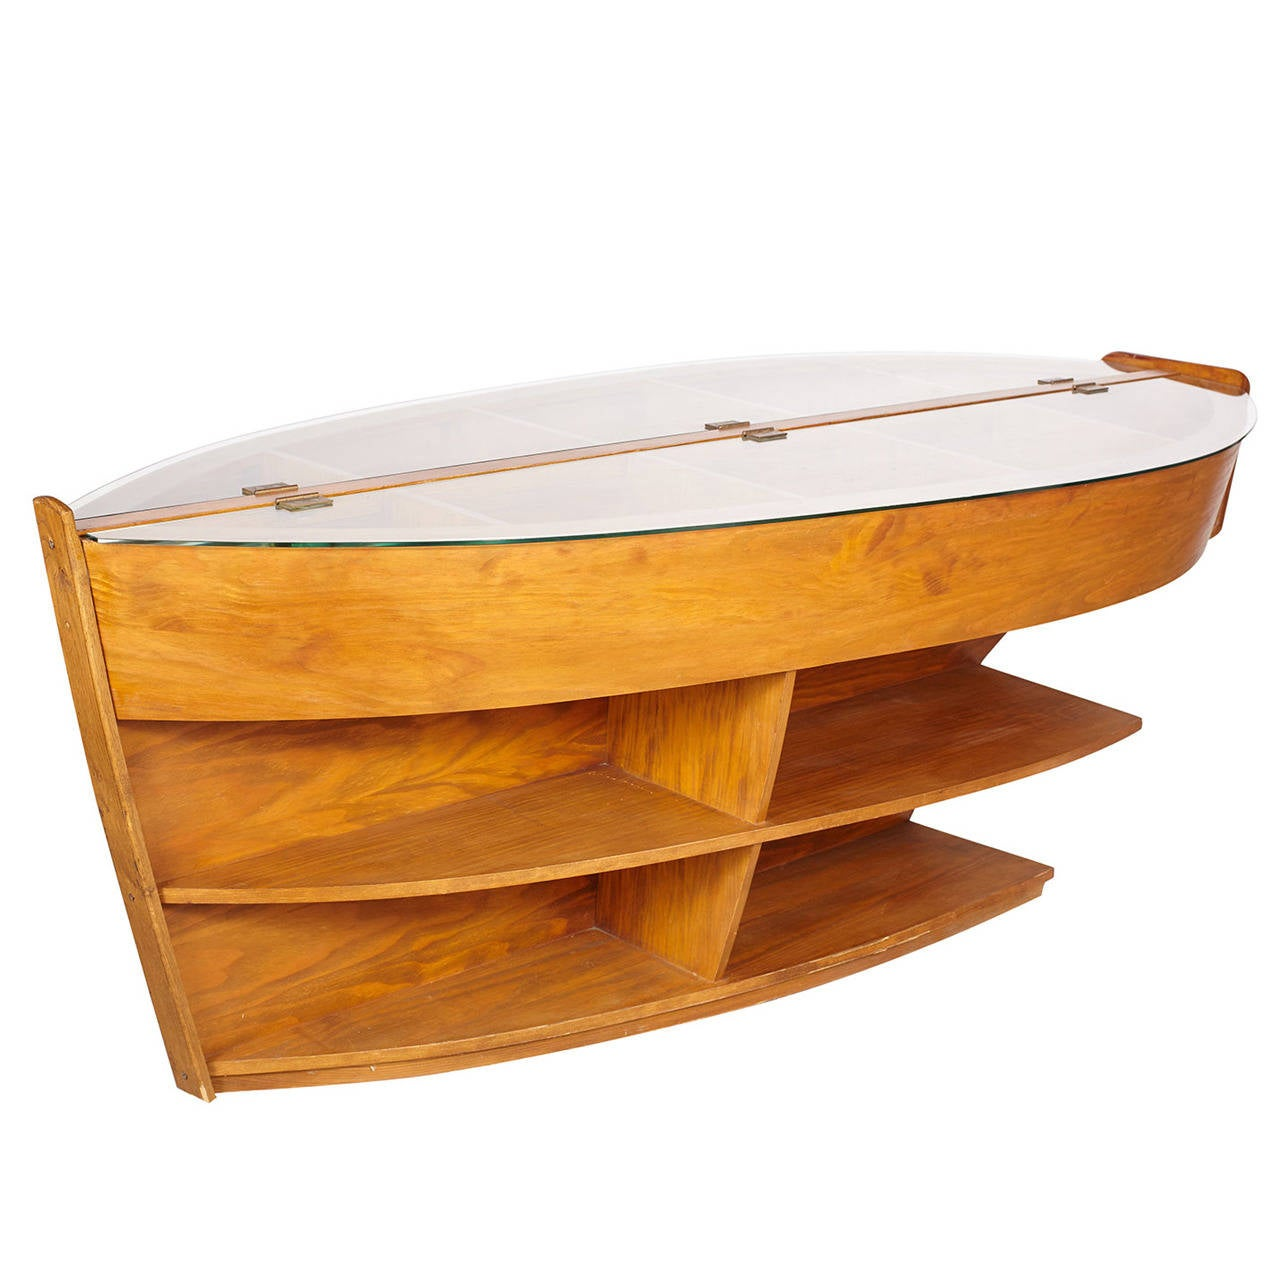 Wooden boat library case table for sale at stdibs